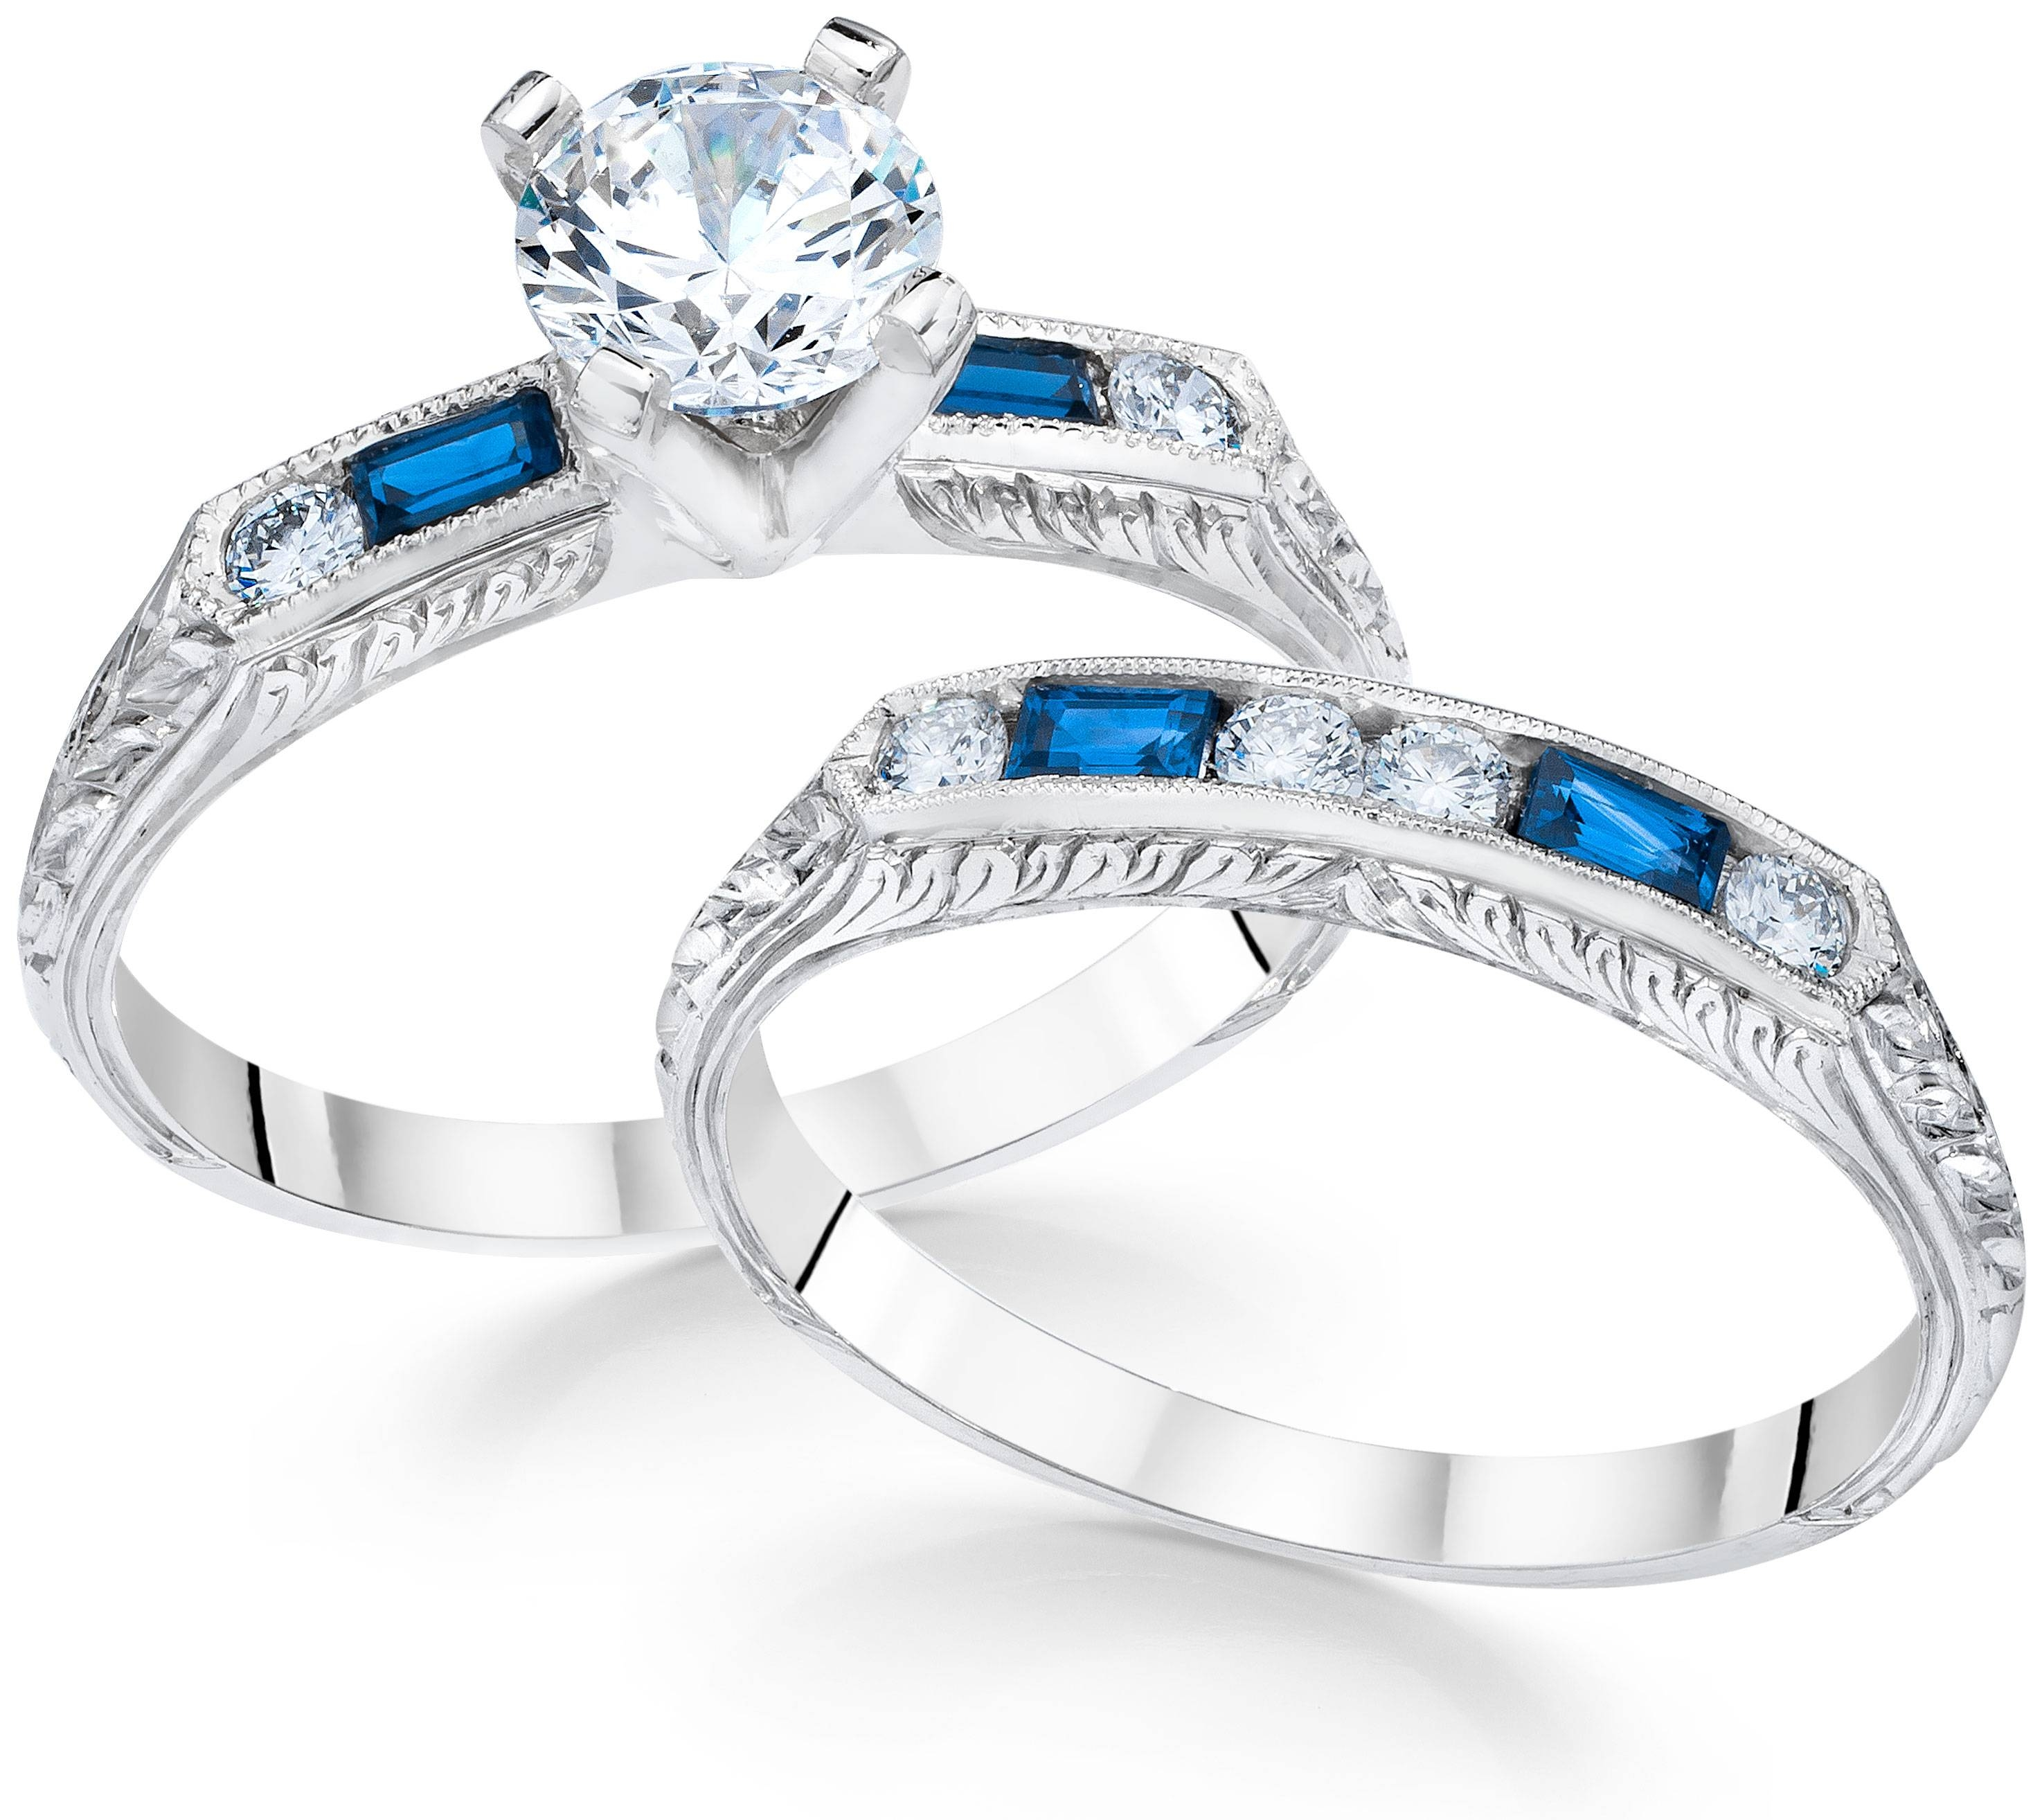 The Perfect Pair: 9 Ideal Engagement Ring & Wedding Band With Regard To Engagement Rings Wedding Bands (View 10 of 15)